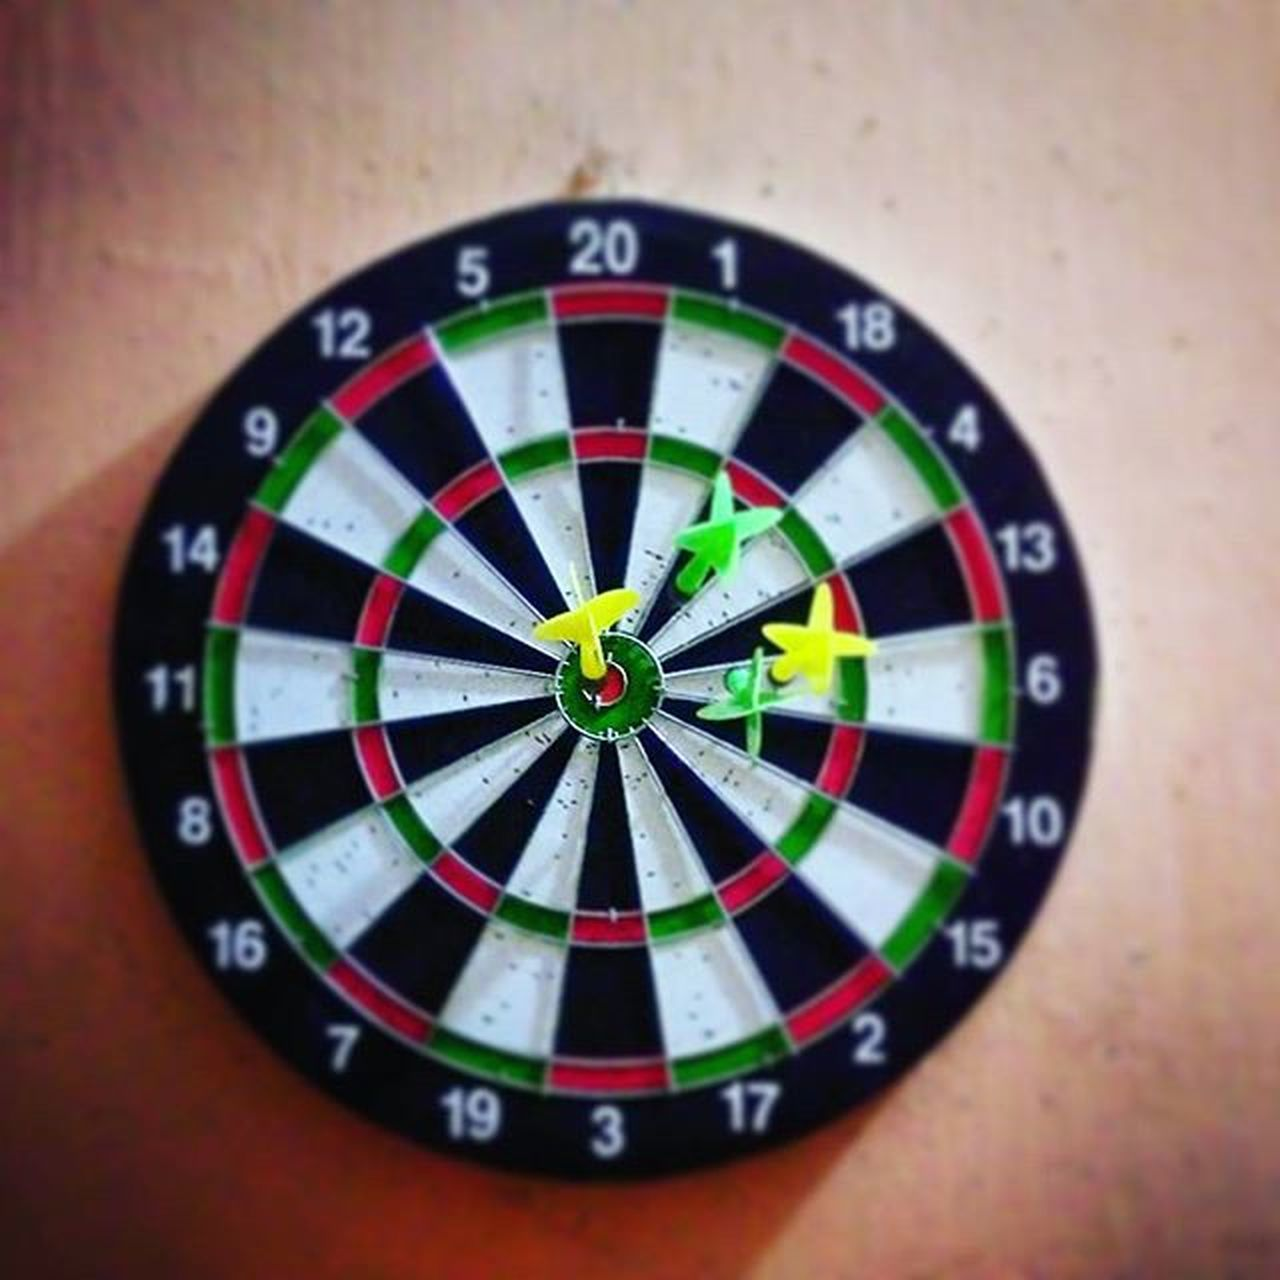 accuracy, sports target, sport, direction, leisure activity, leisure games, recreational pursuit, skill, guidance, close-up, vignette, arrow, challenge, indoors, no people, day, chance